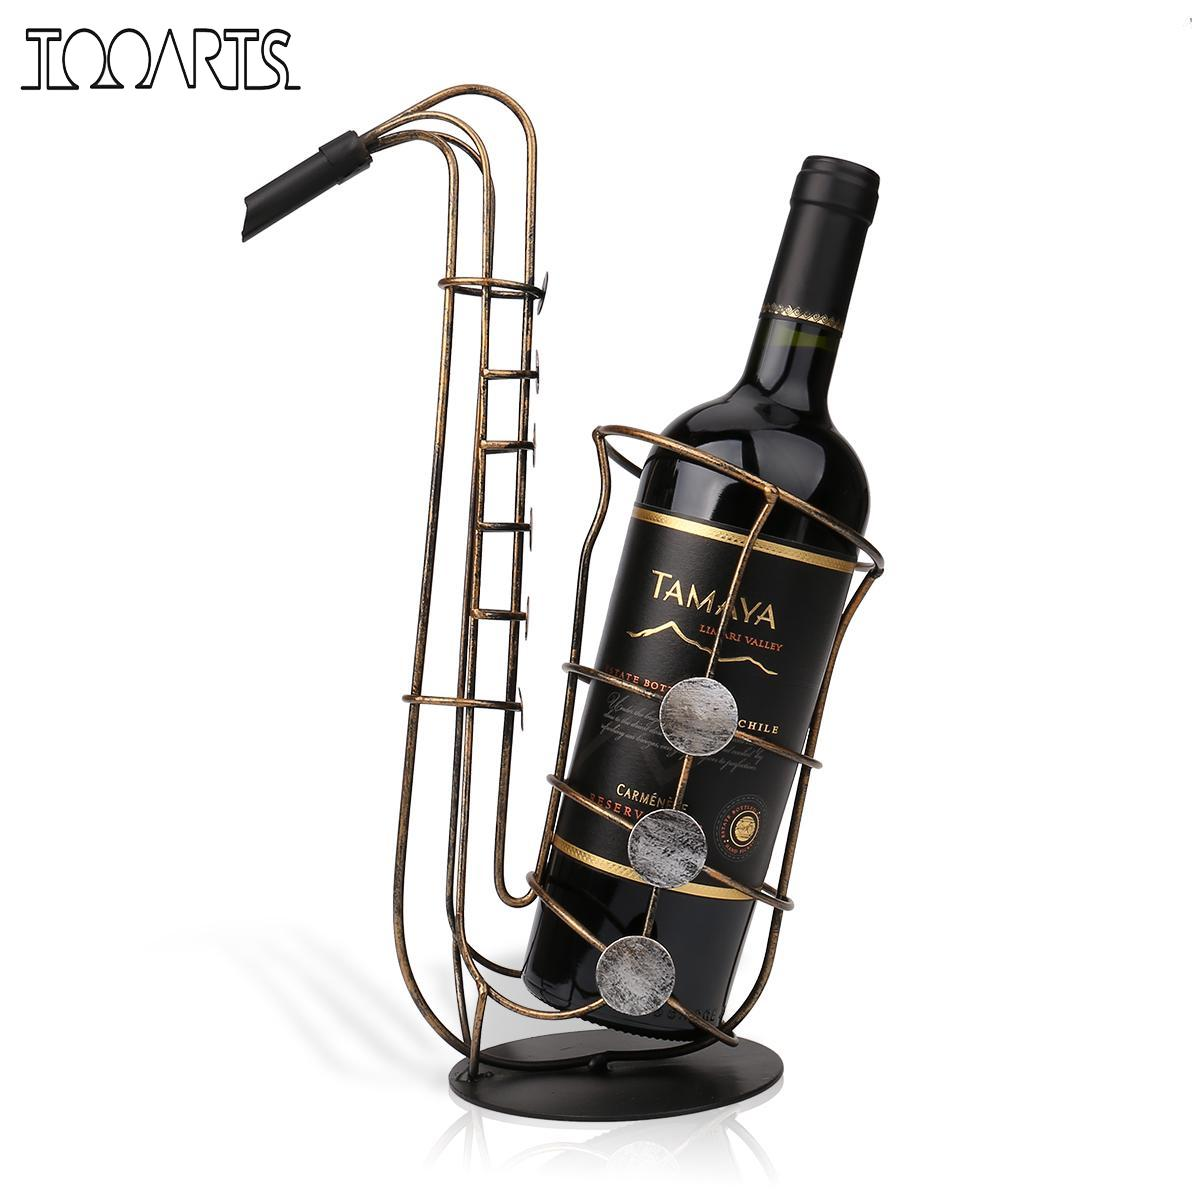 Tooarts Metal sax Wine Rack Beautiful Crafts Artwork Gift Wine Holder Figurines Creative Wine Bottle Stand